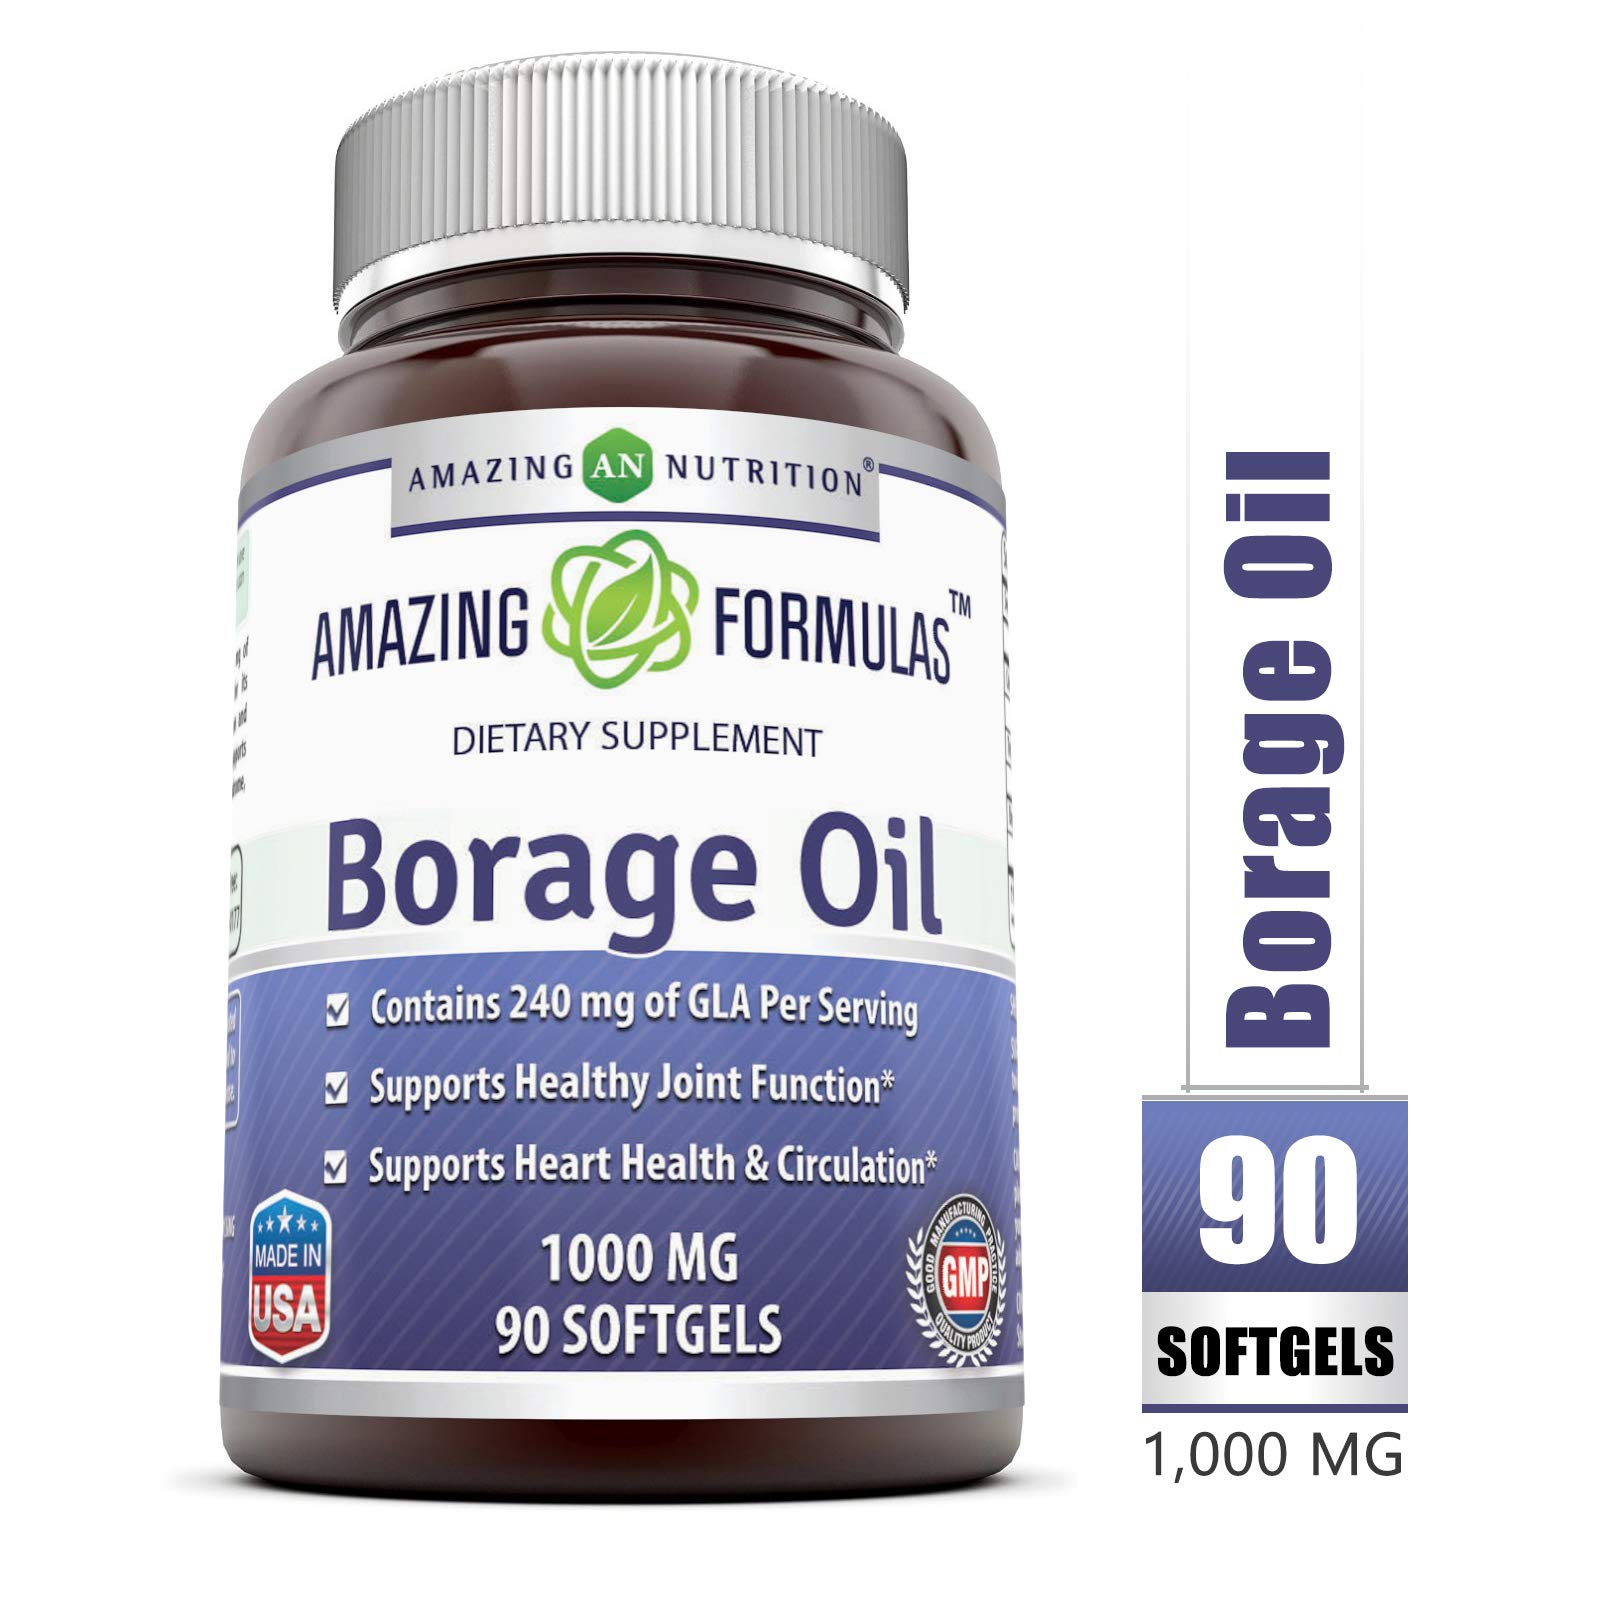 Amazing Formulas Borage Oil Dietary Supplement - 1000mg Capsules -90 SoftGels Per Bottle - 240mg Gamma Linoleic Acid (GLA) and 380mg Linoleic Acid -90 SoftGels Per Bottle